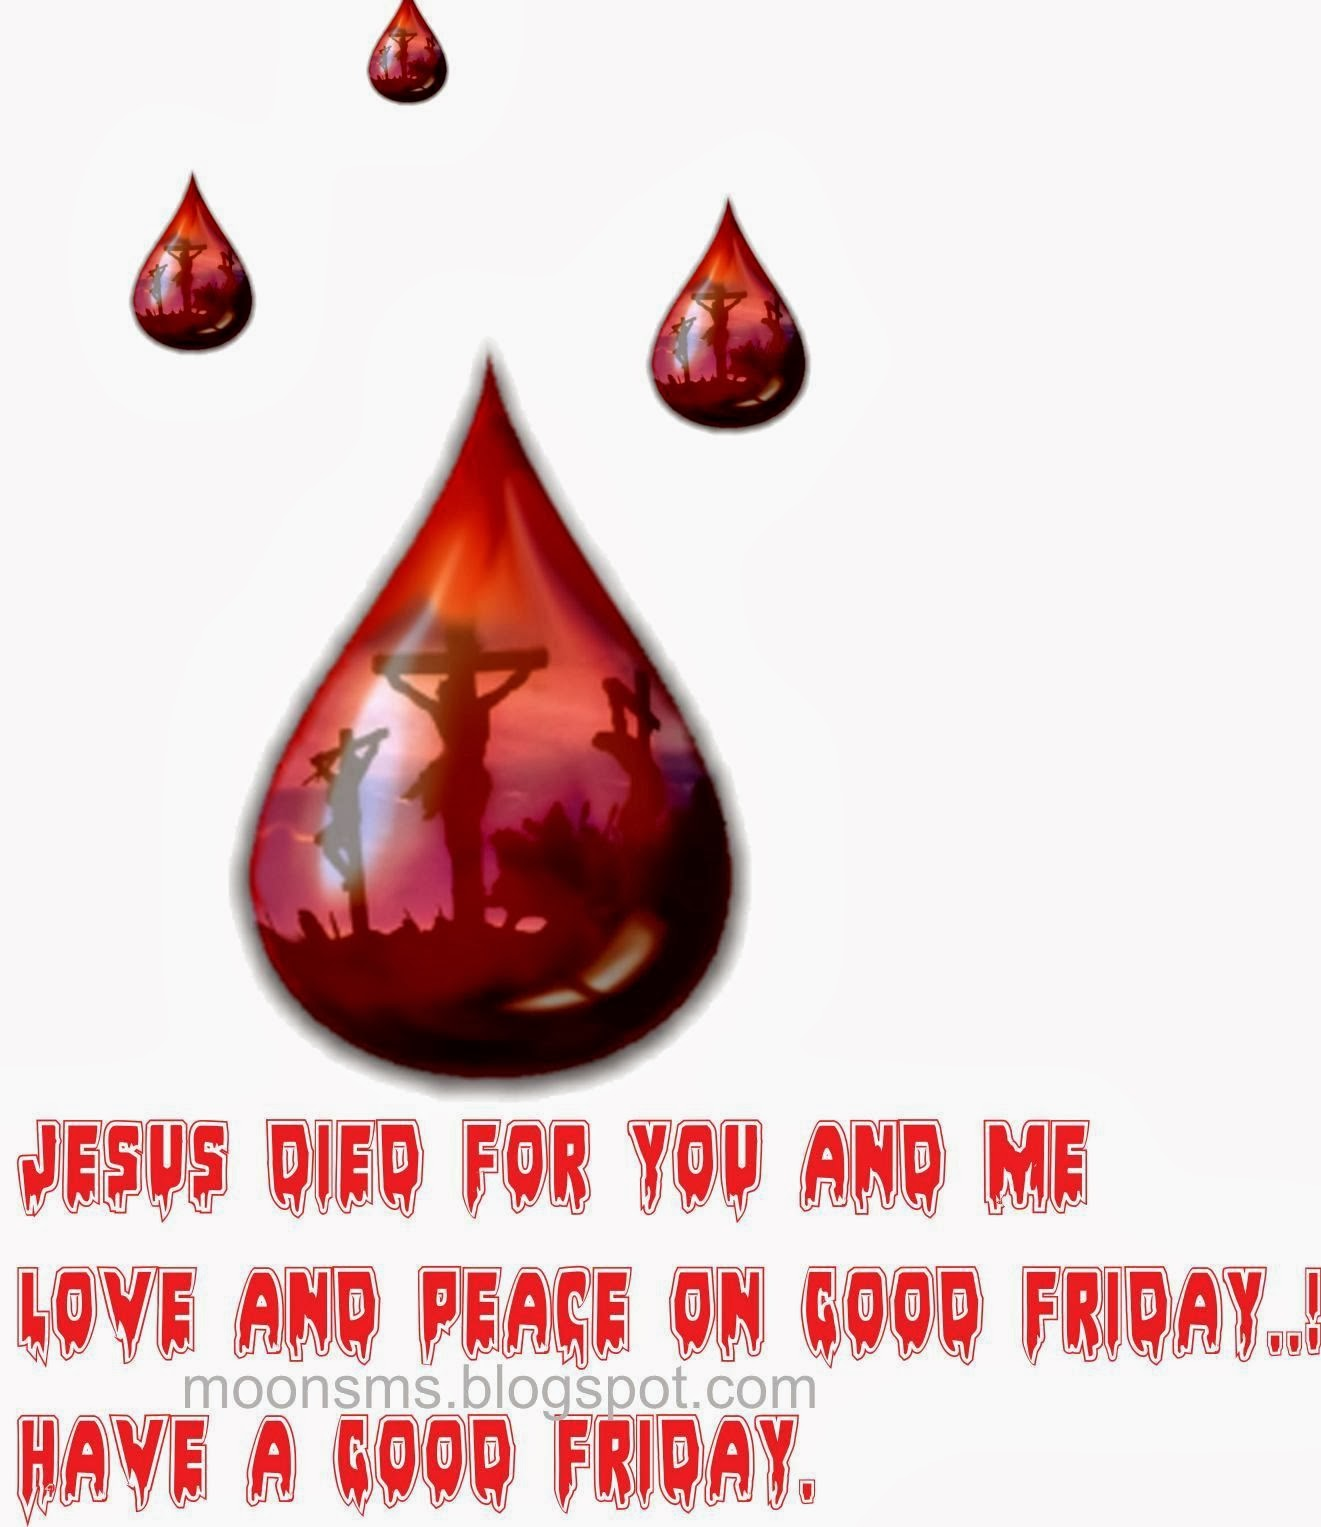 Christian Post Moonsms Good Friday Sms Text Messages Wishes Quotes